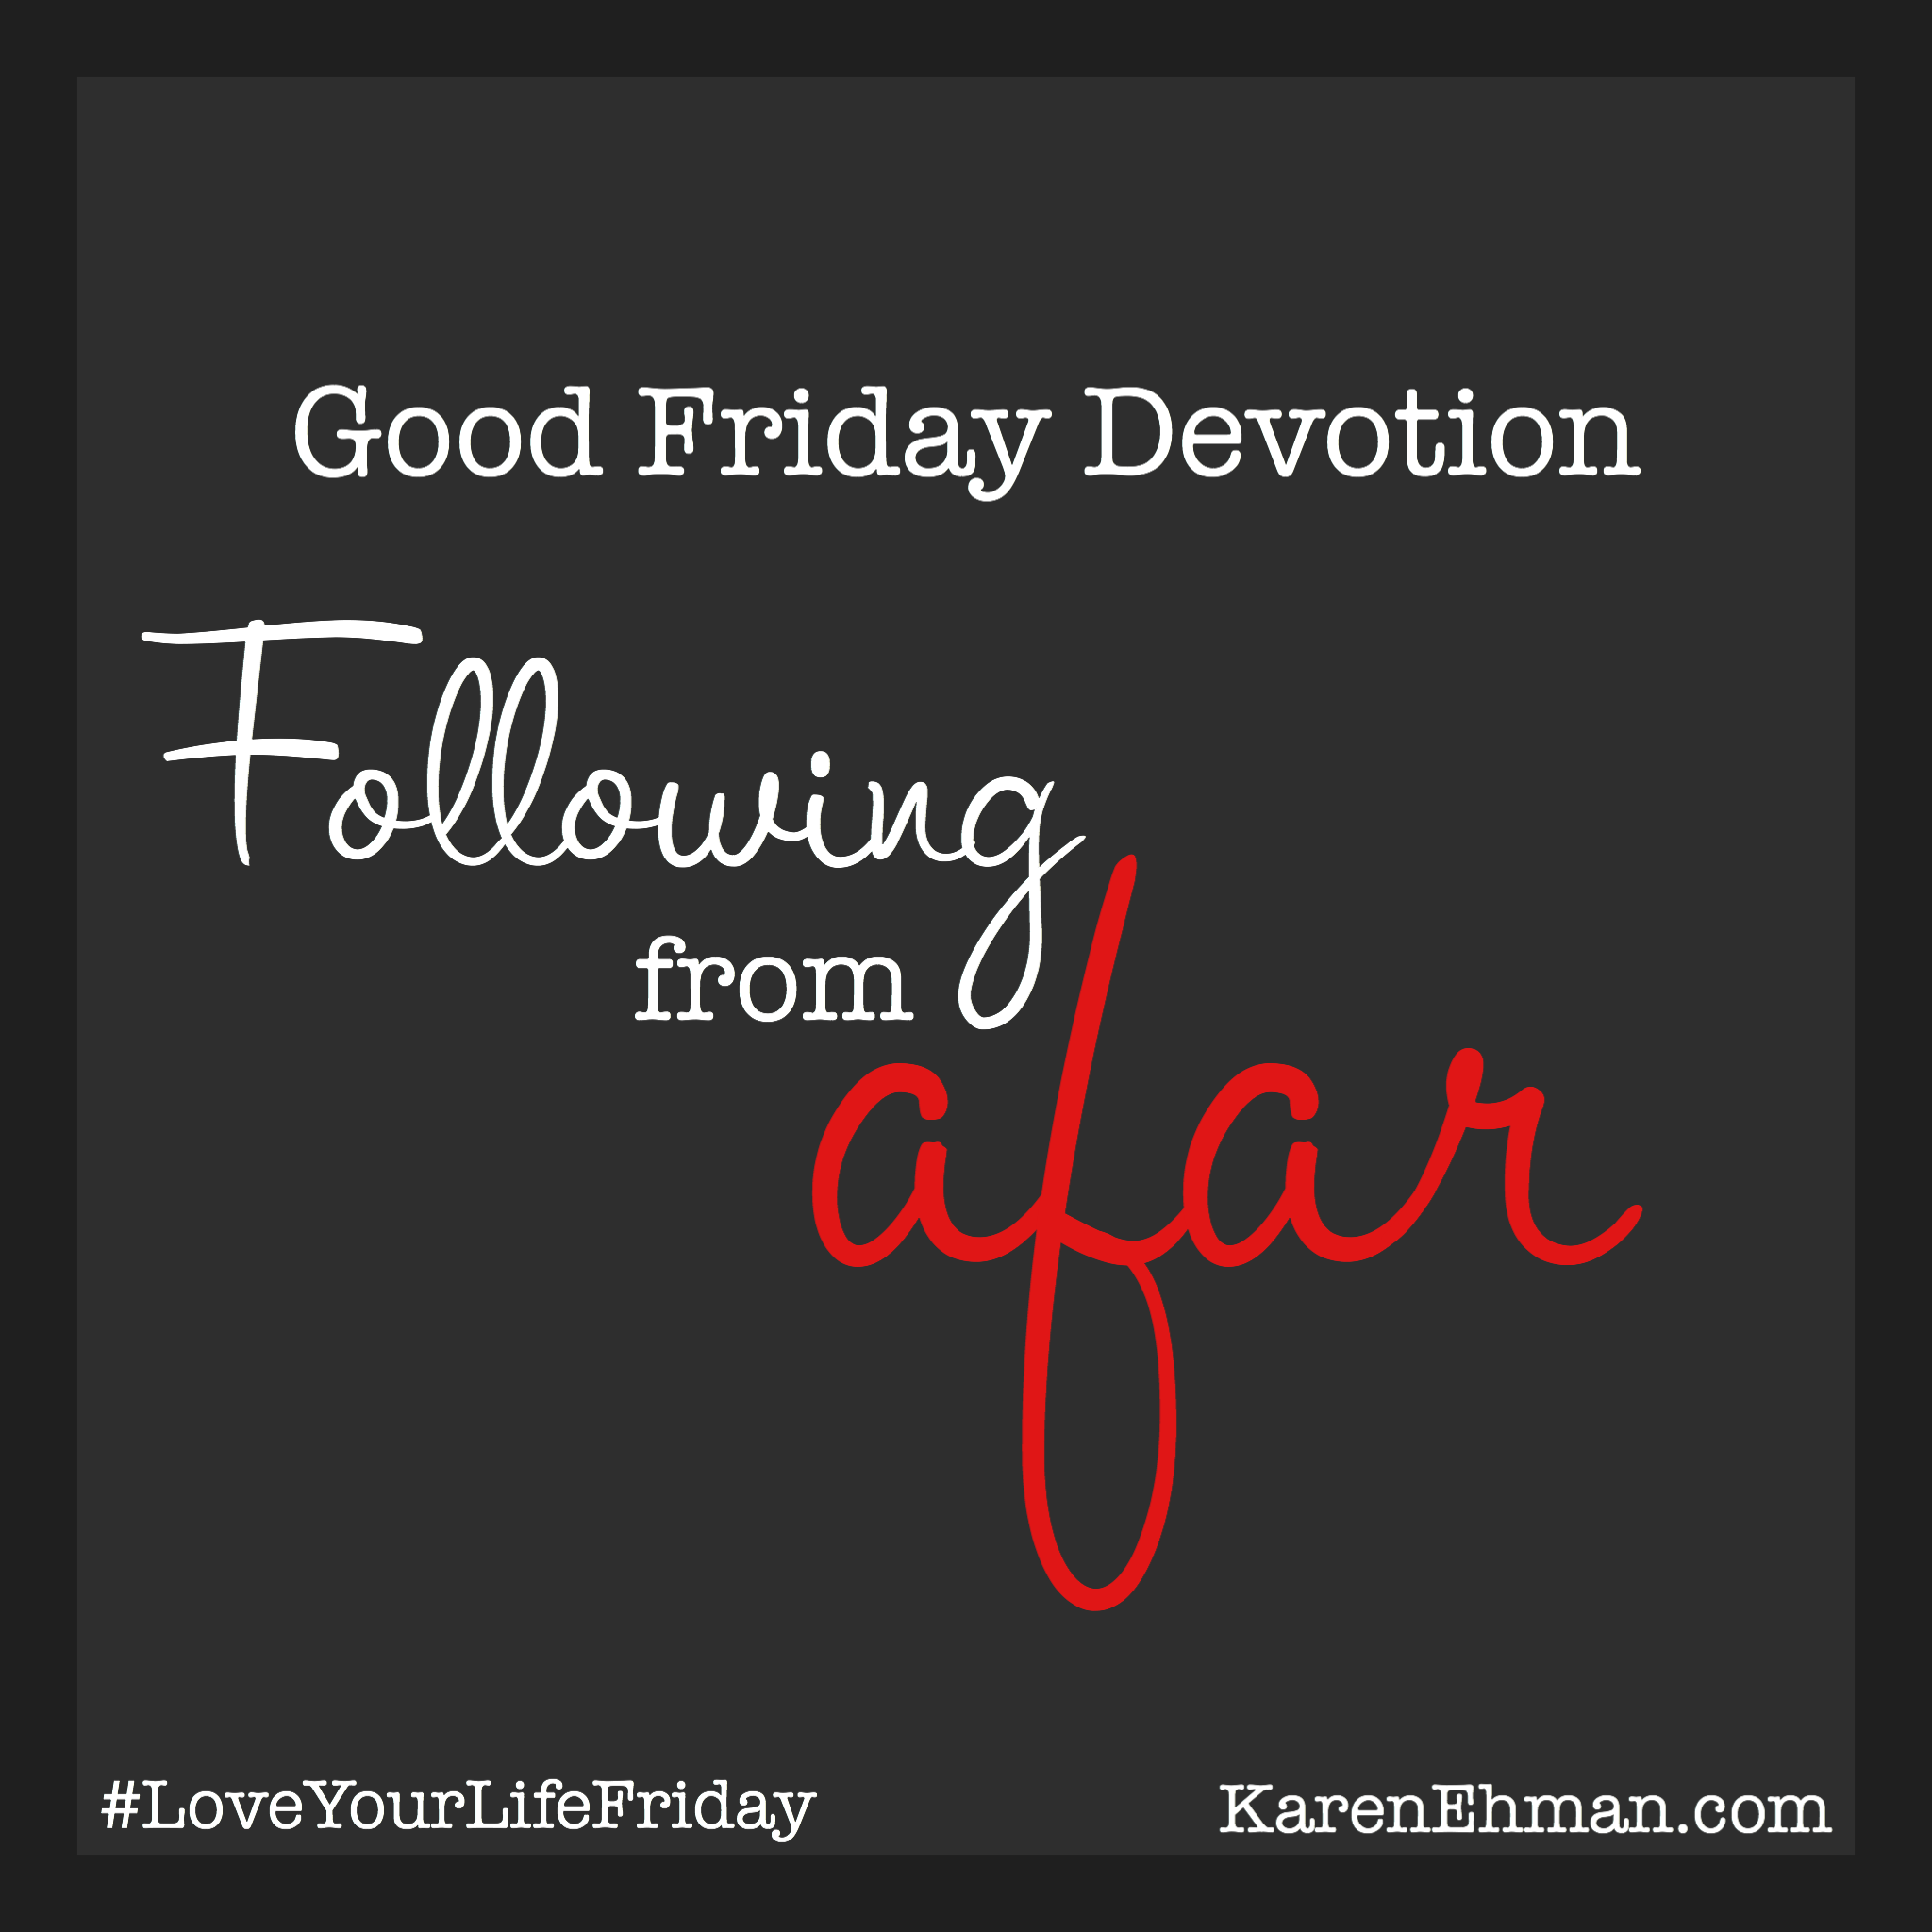 Good Friday Devotion: Following from Afar at KarenEhman.com